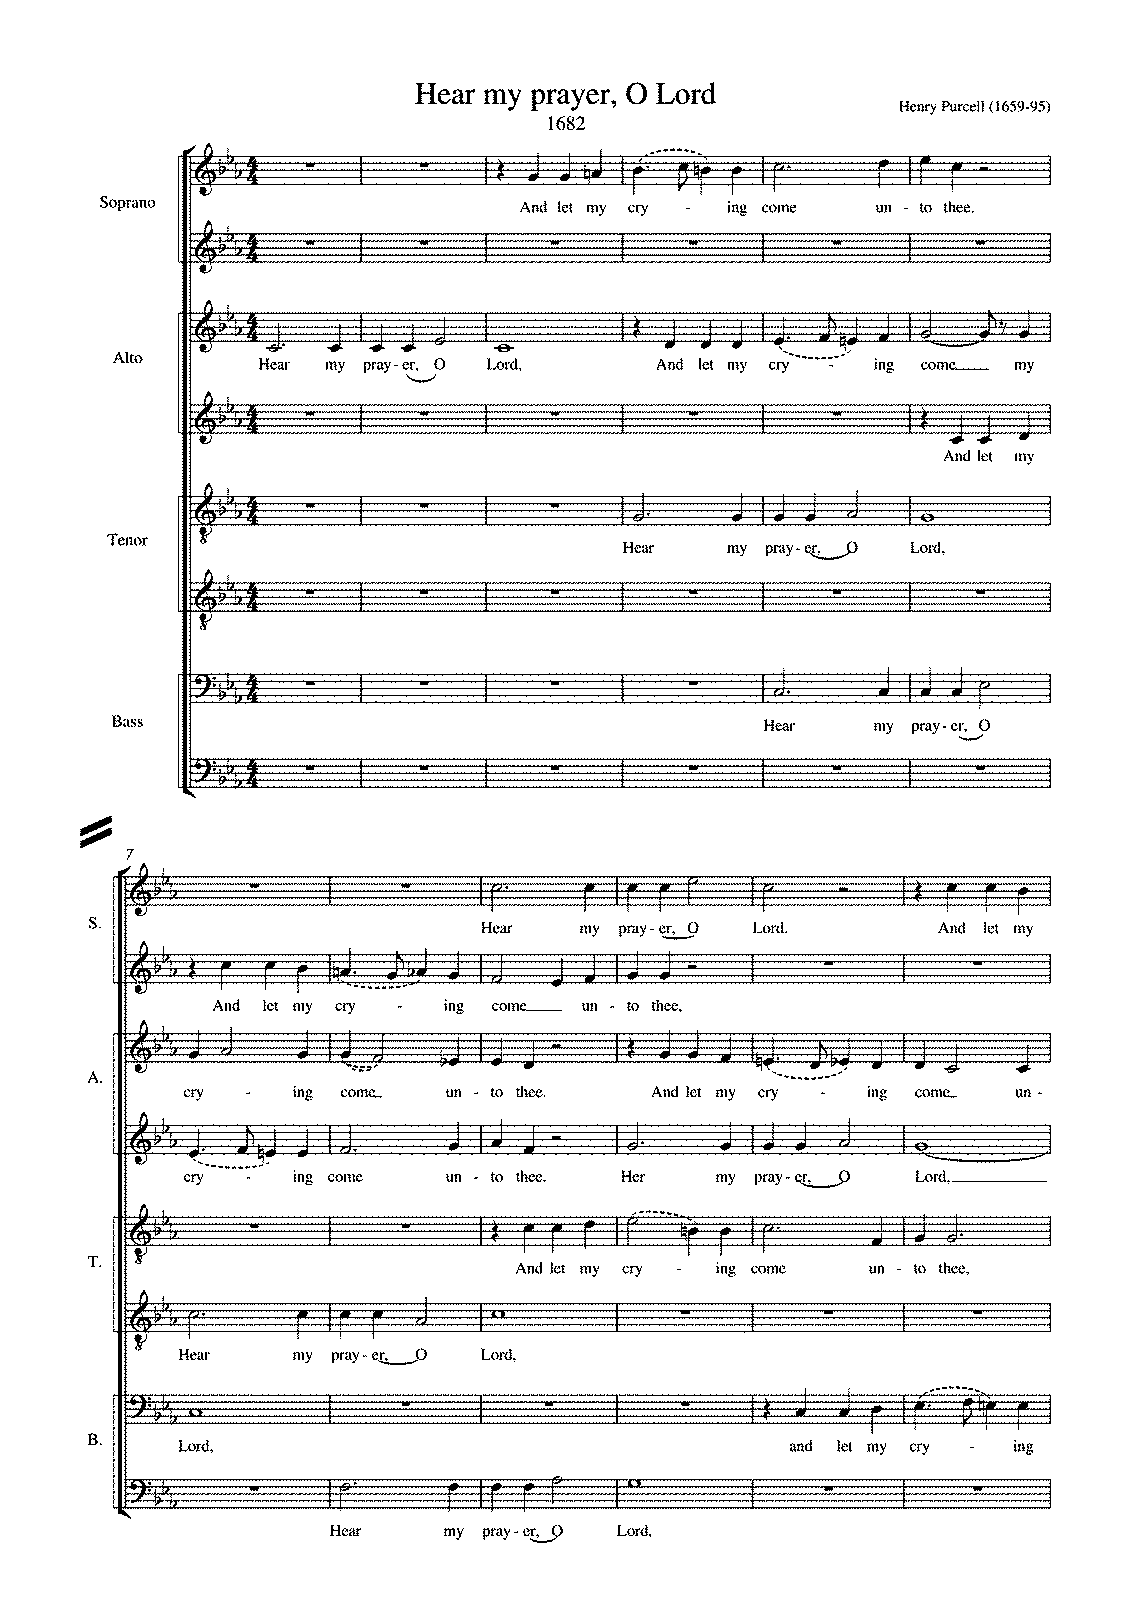 PMLP145253-Hear my prayer - Purcell.pdf